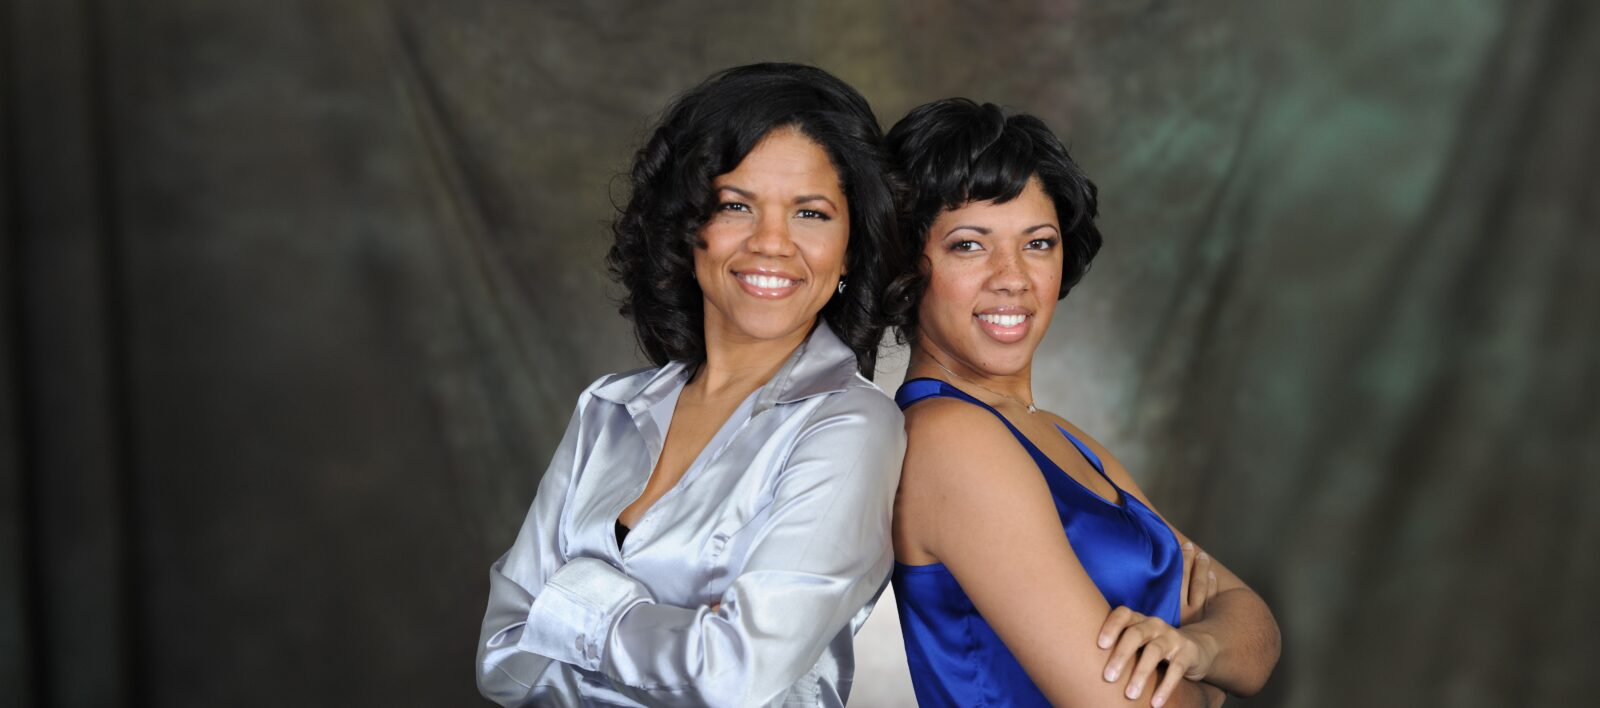 Ramona Houston, Ph.D., PMP, and Rhesa Houston, DVM,